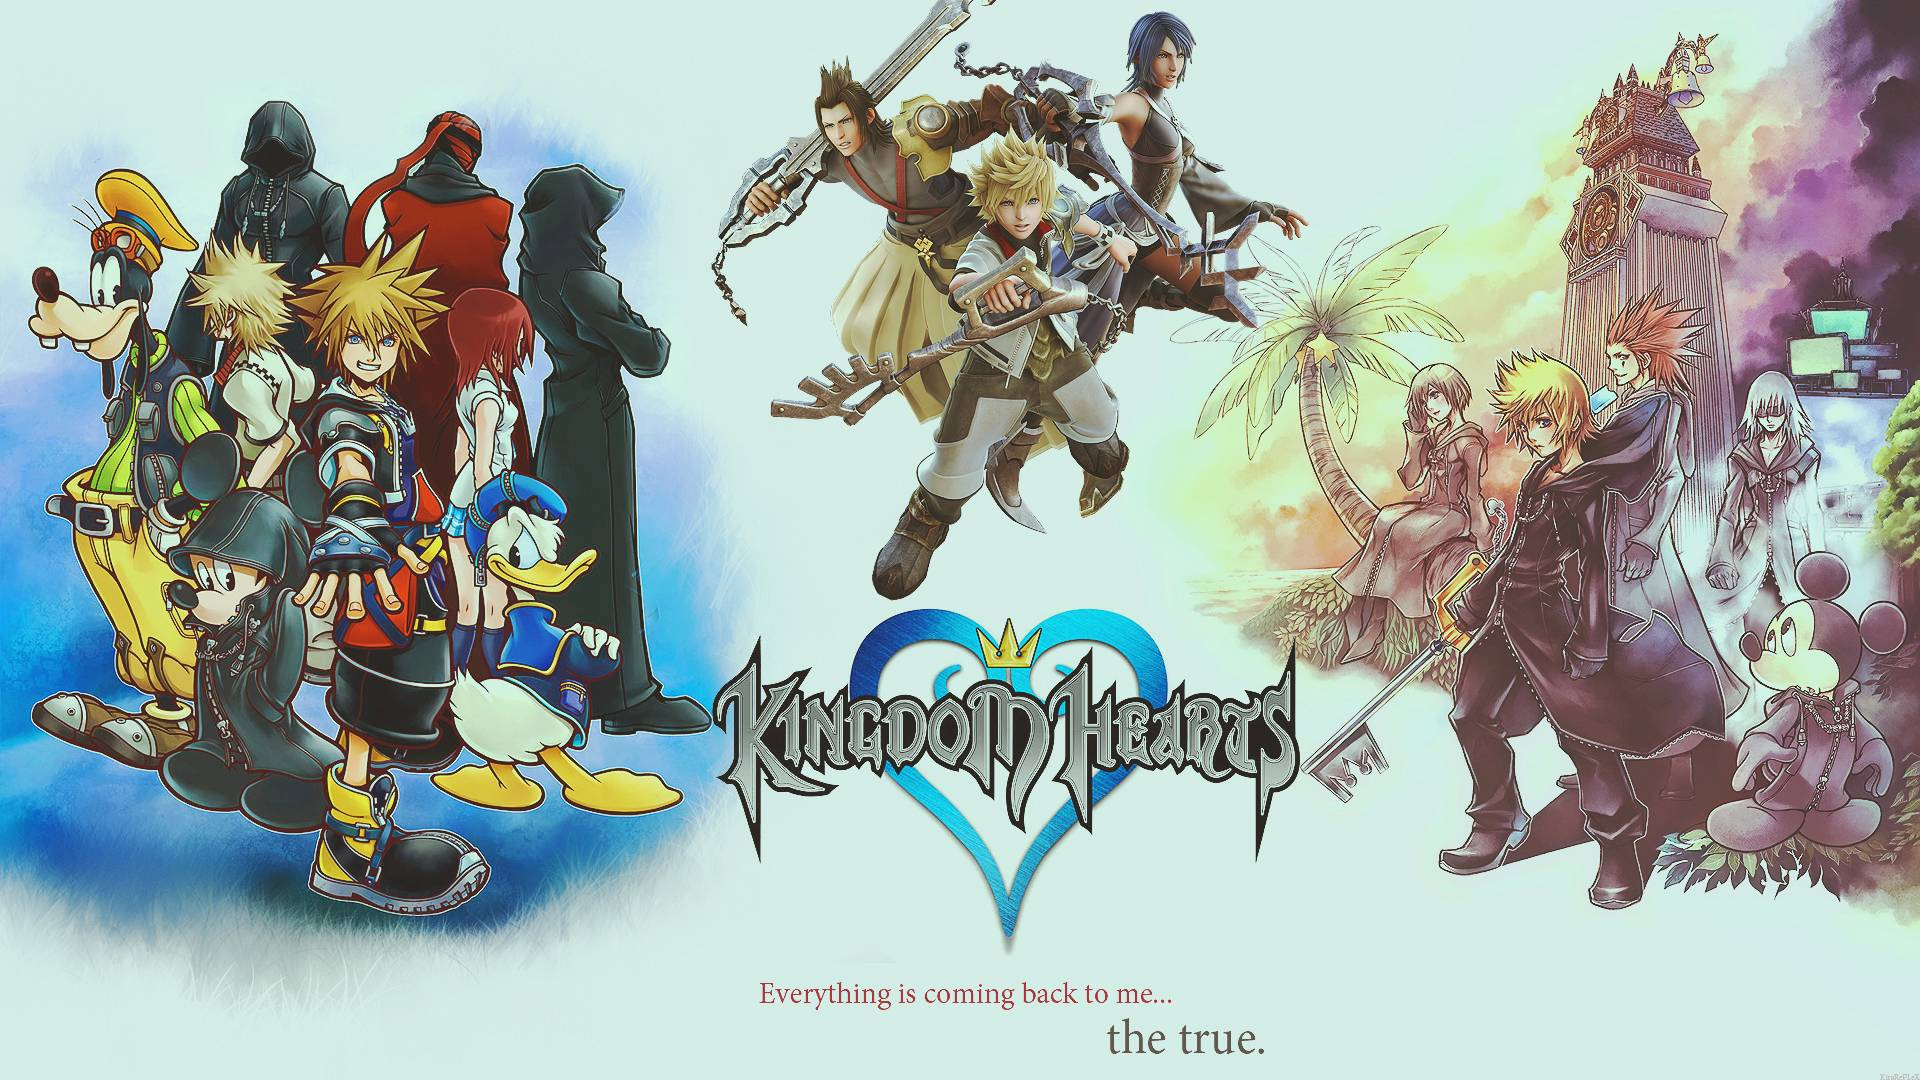 Kingdom Hearts Wallpapers Hd Wallpapers